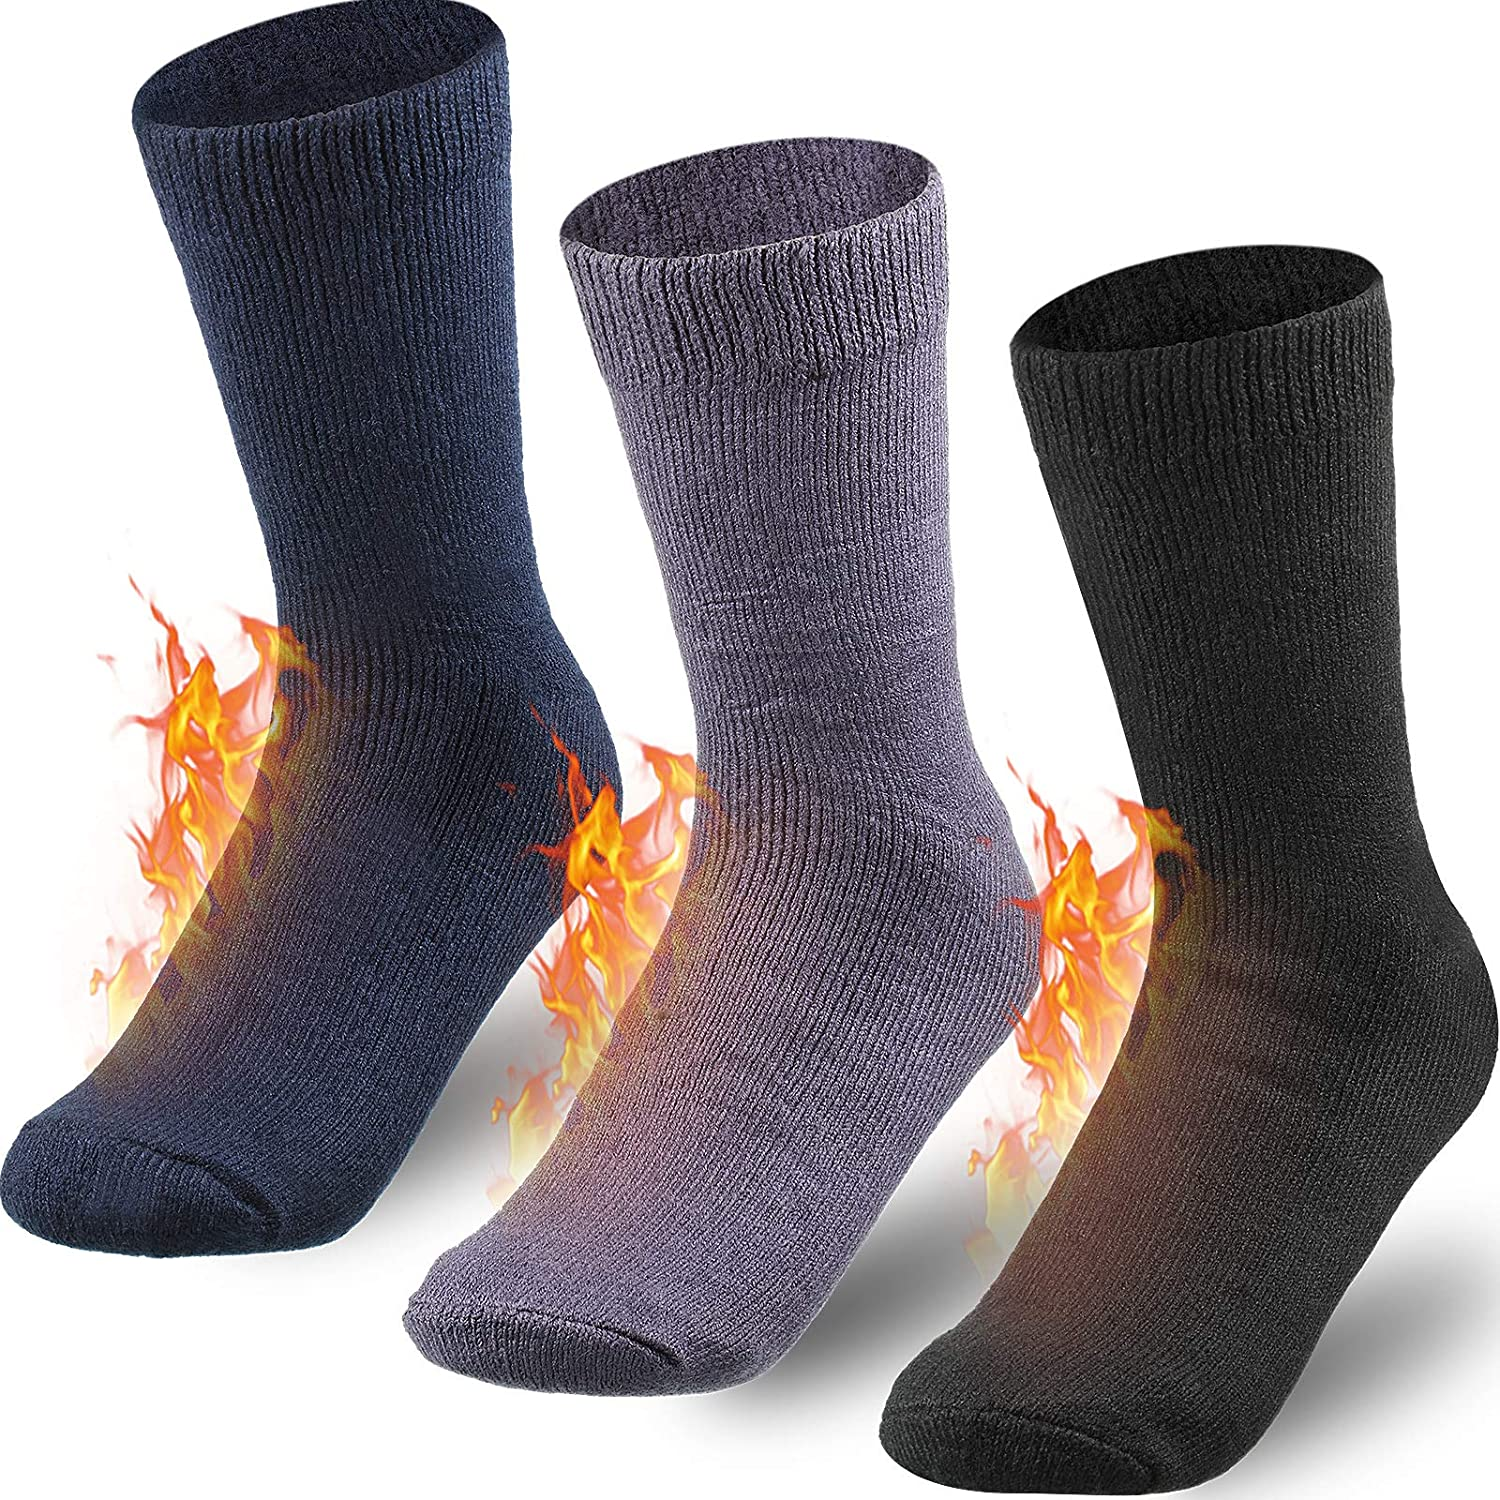 Geyoga 3 Pairs Heated Socks Thermal Socks Warm Thick Socks for Men Women Winter Warm Socks Insulated Cold Soft Fuzzy Crew Winter Boys Socks, 3 Colors